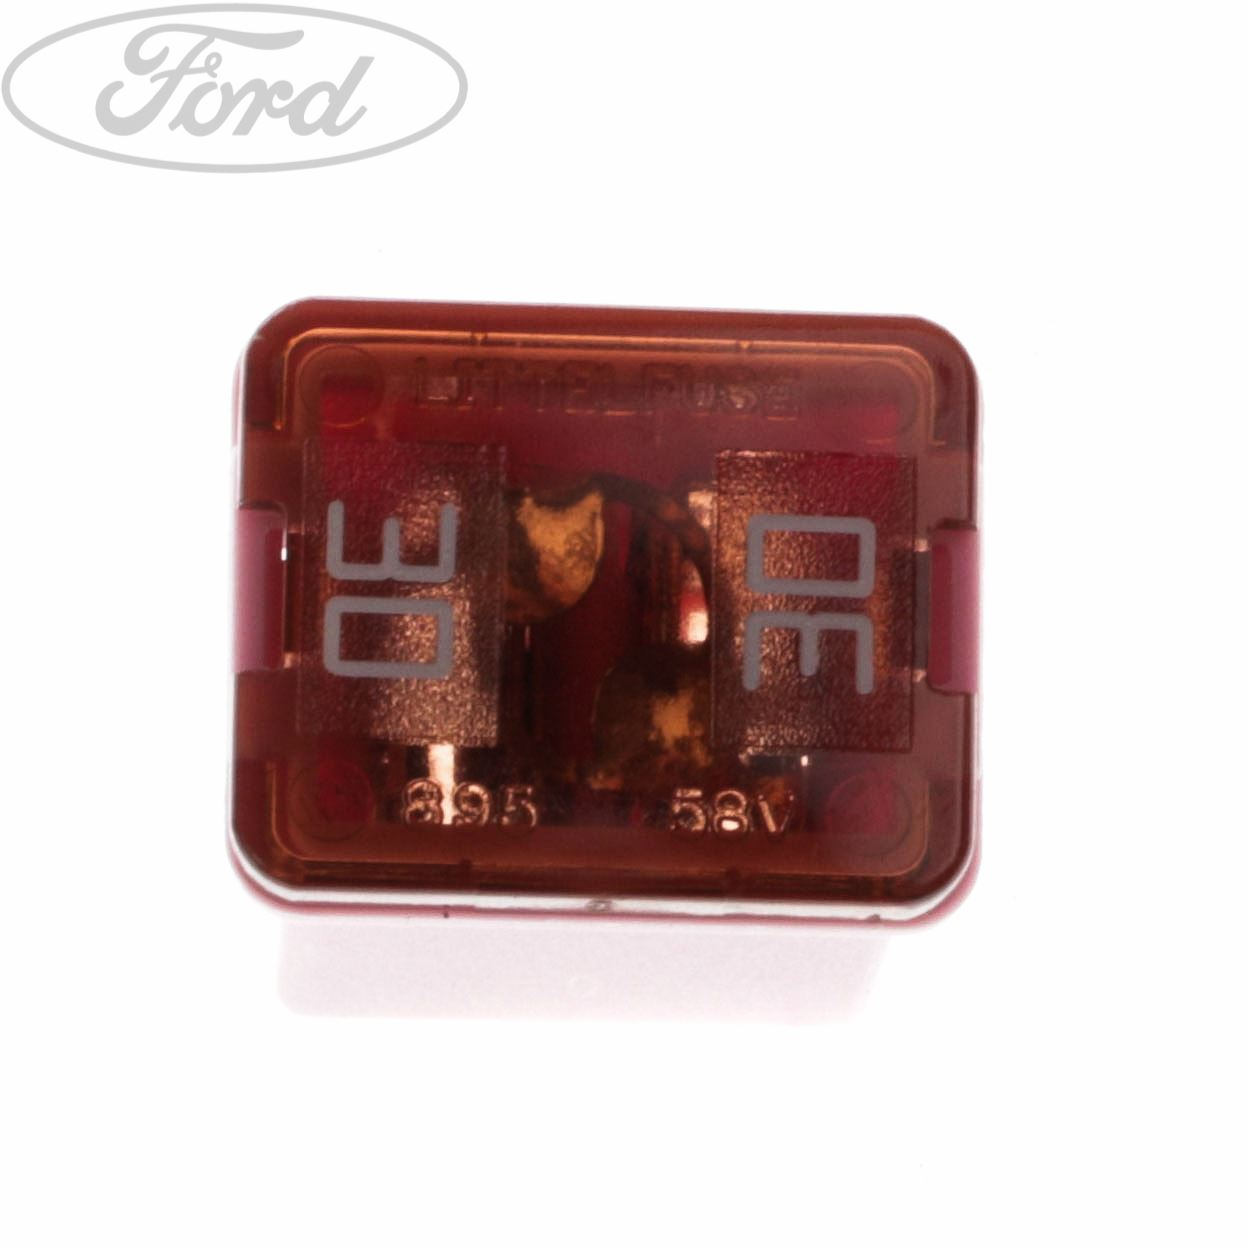 hight resolution of details about genuine ford c max mondeo galaxy s max focus circuit breaker 30 amp fuse 4780766